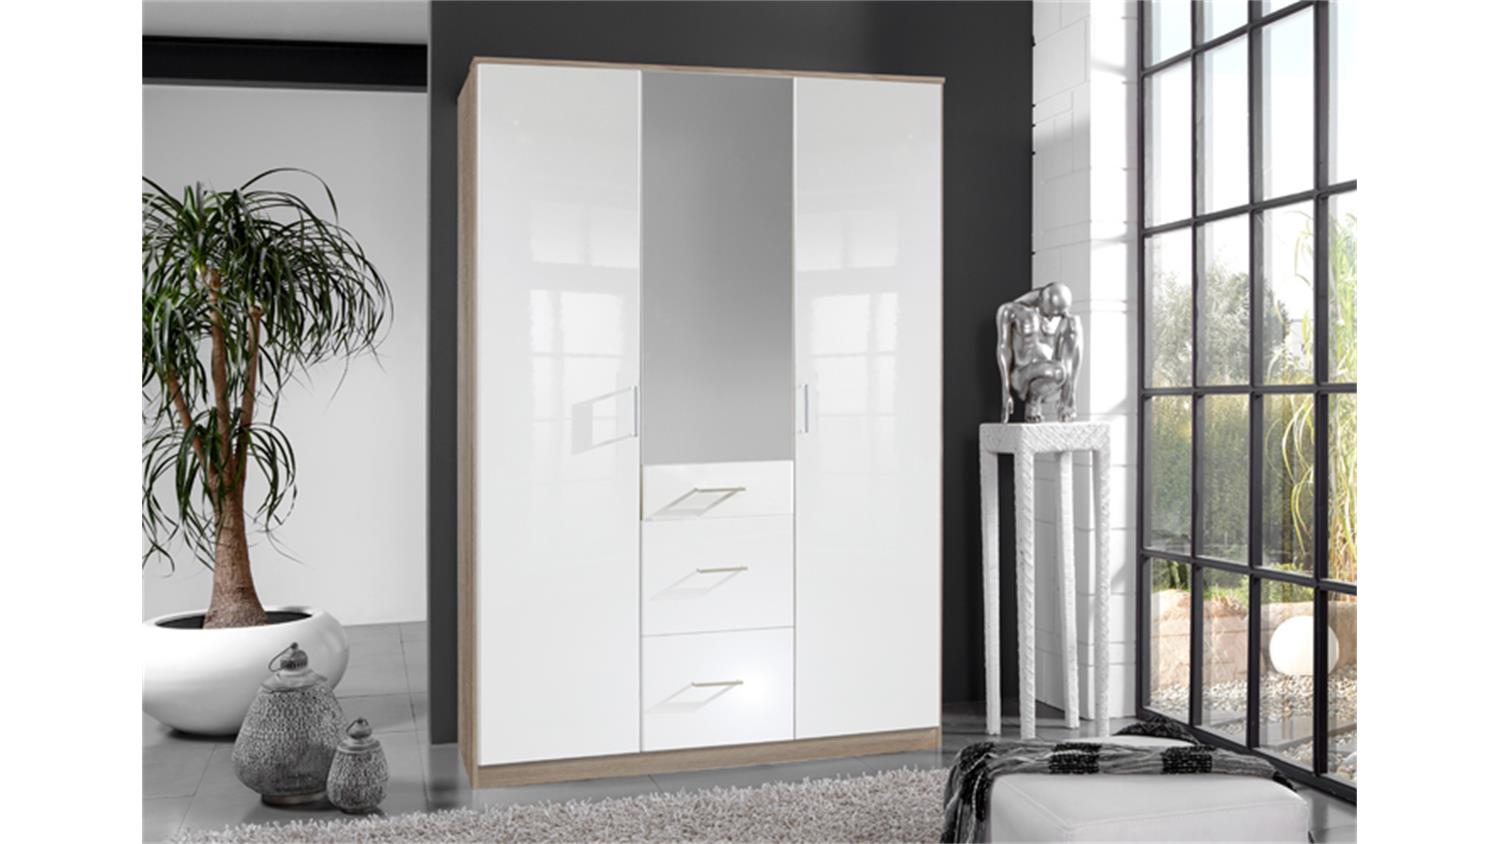 kleiderschrank clack hochglanz wei eiche mit spiegel 135 cm. Black Bedroom Furniture Sets. Home Design Ideas